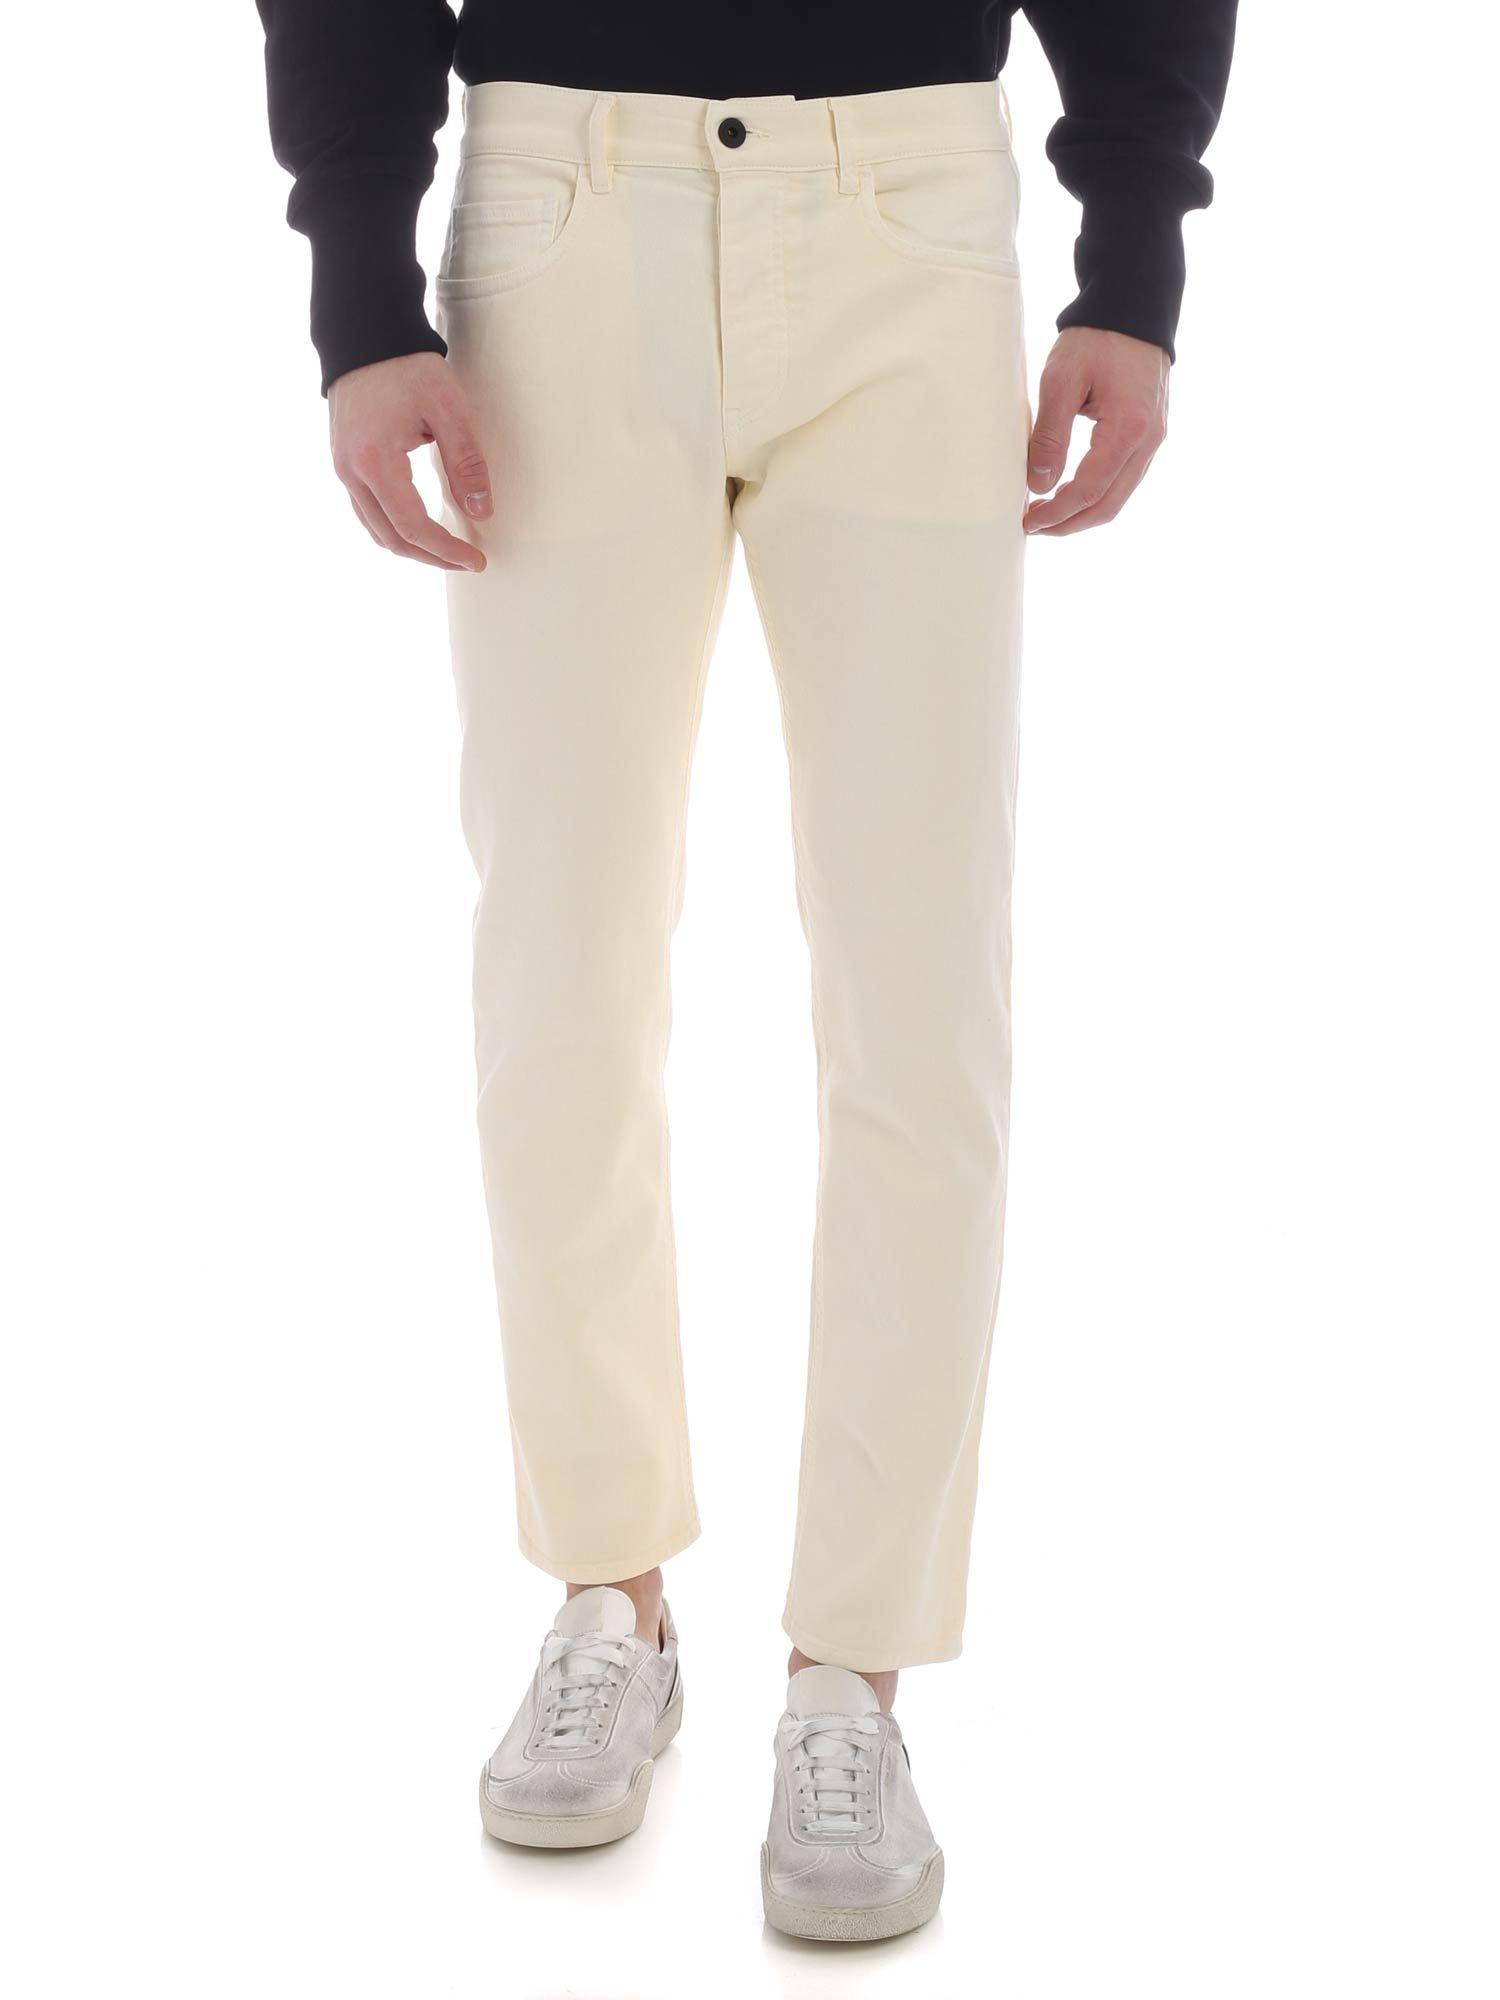 Colored Jeans Mens